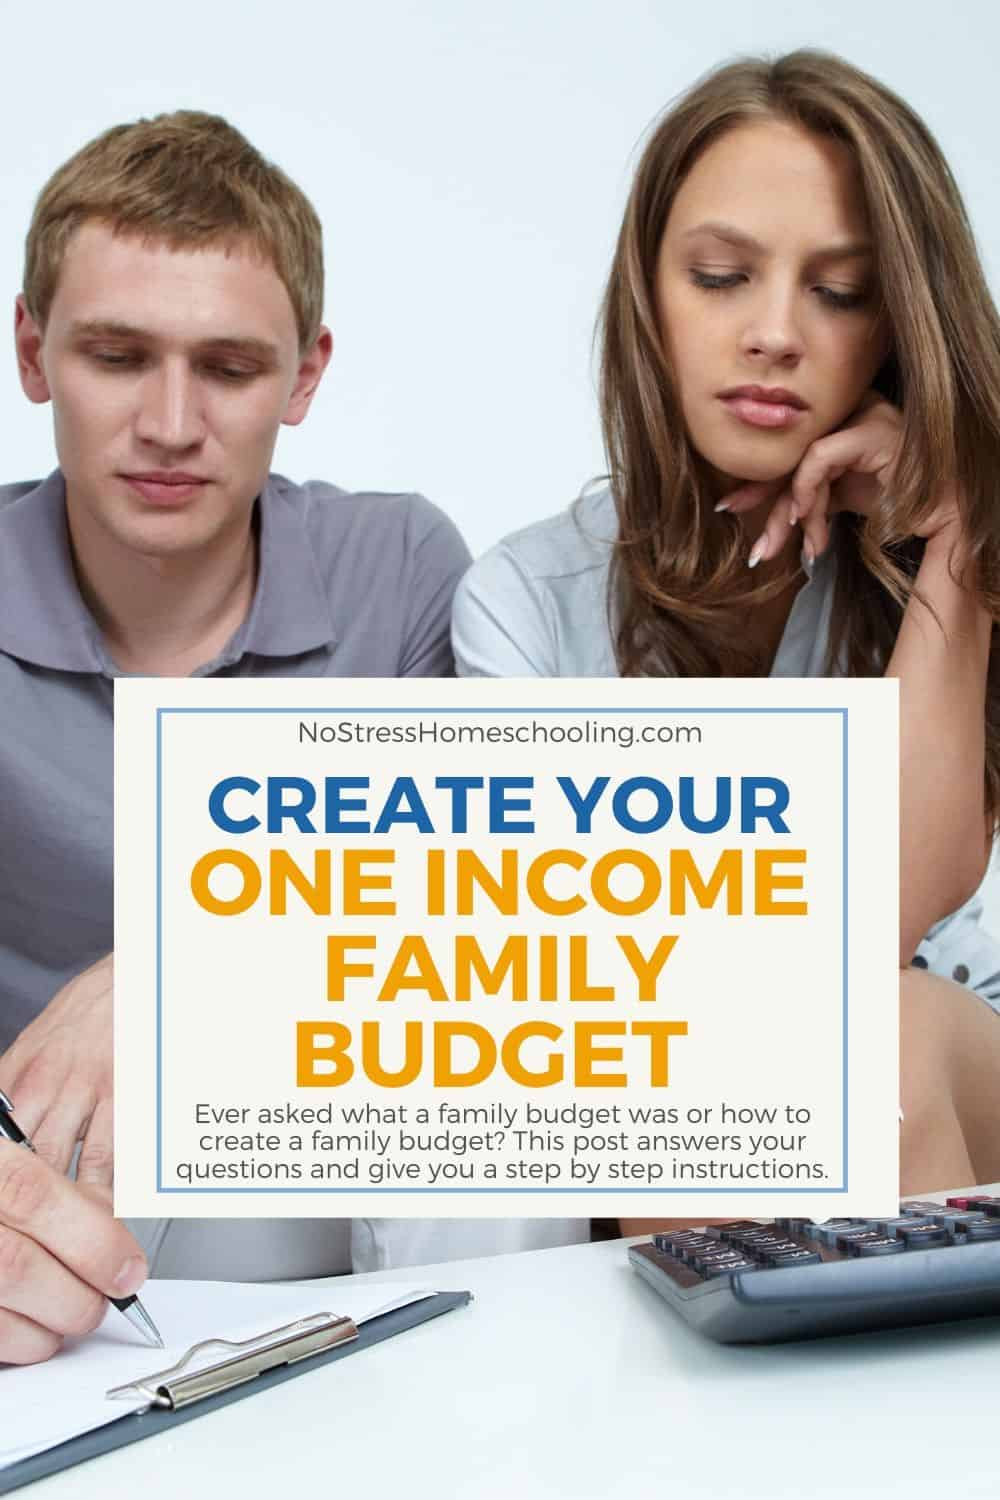 Ever asked what a family budget was or how to create a family budget? This post answers your questions and give you a step by step instructions.